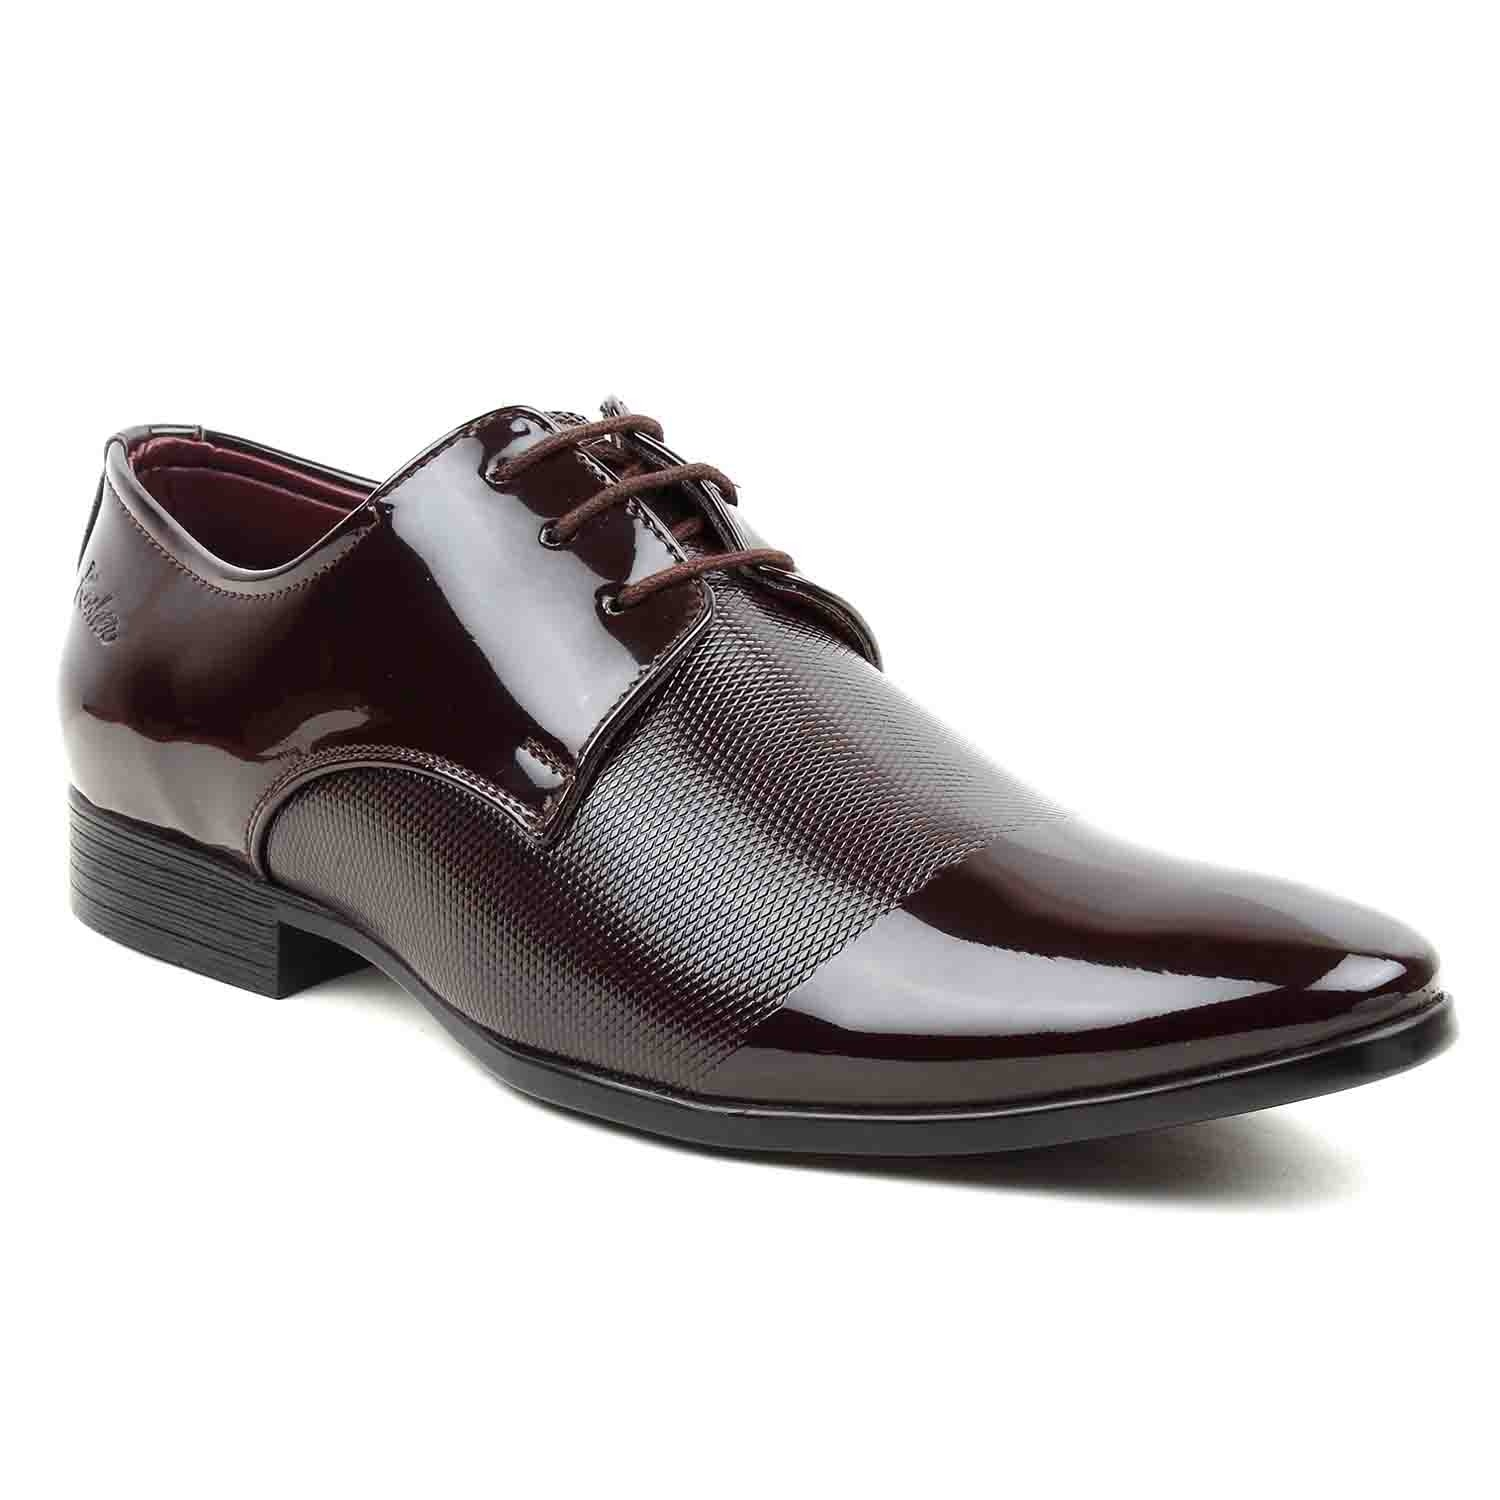 Leatherite Shoes P.Brown